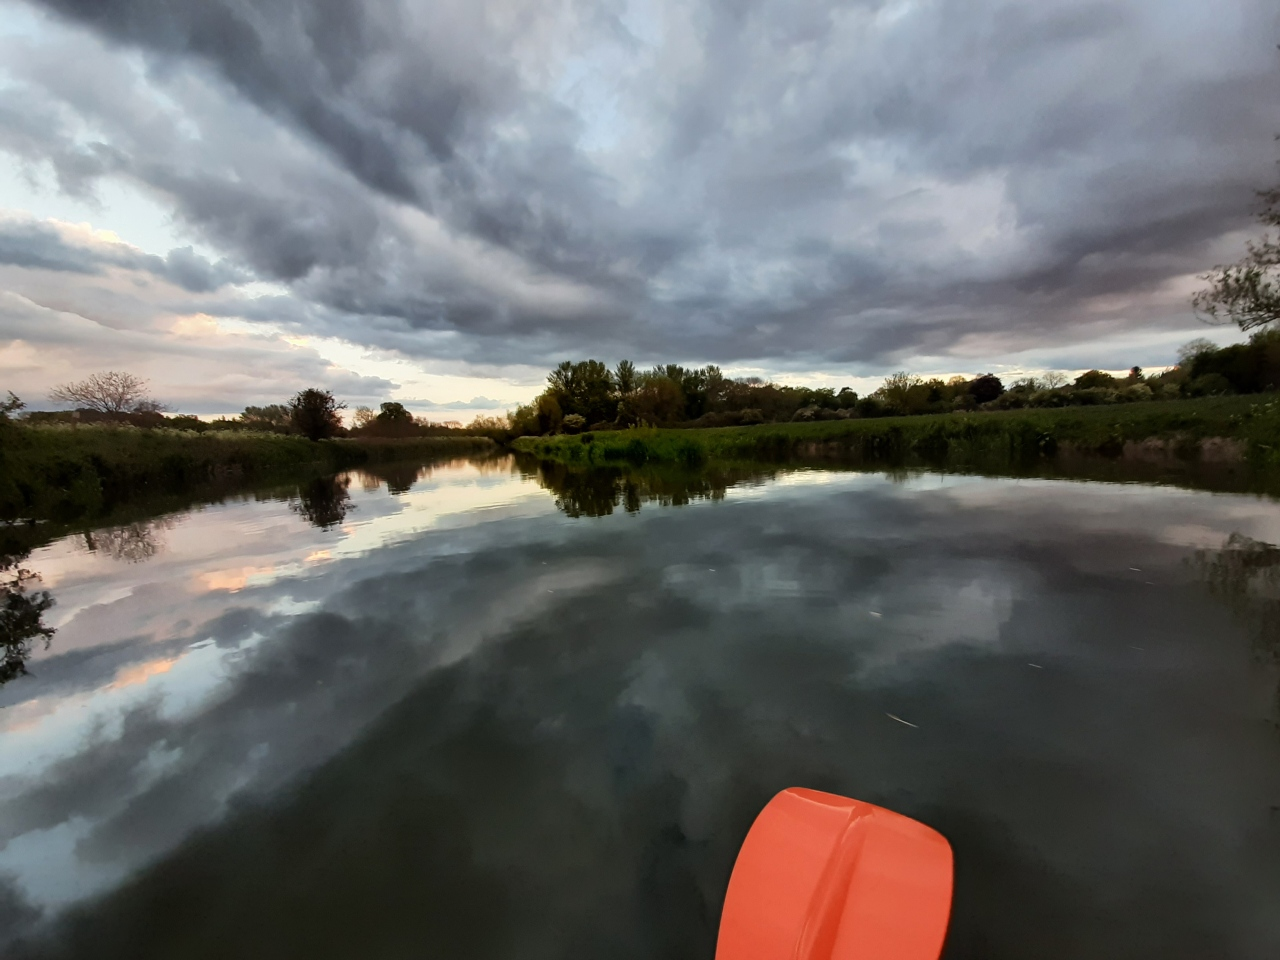 Evening kayak trip from Midsummer Common to the Byron'sPool